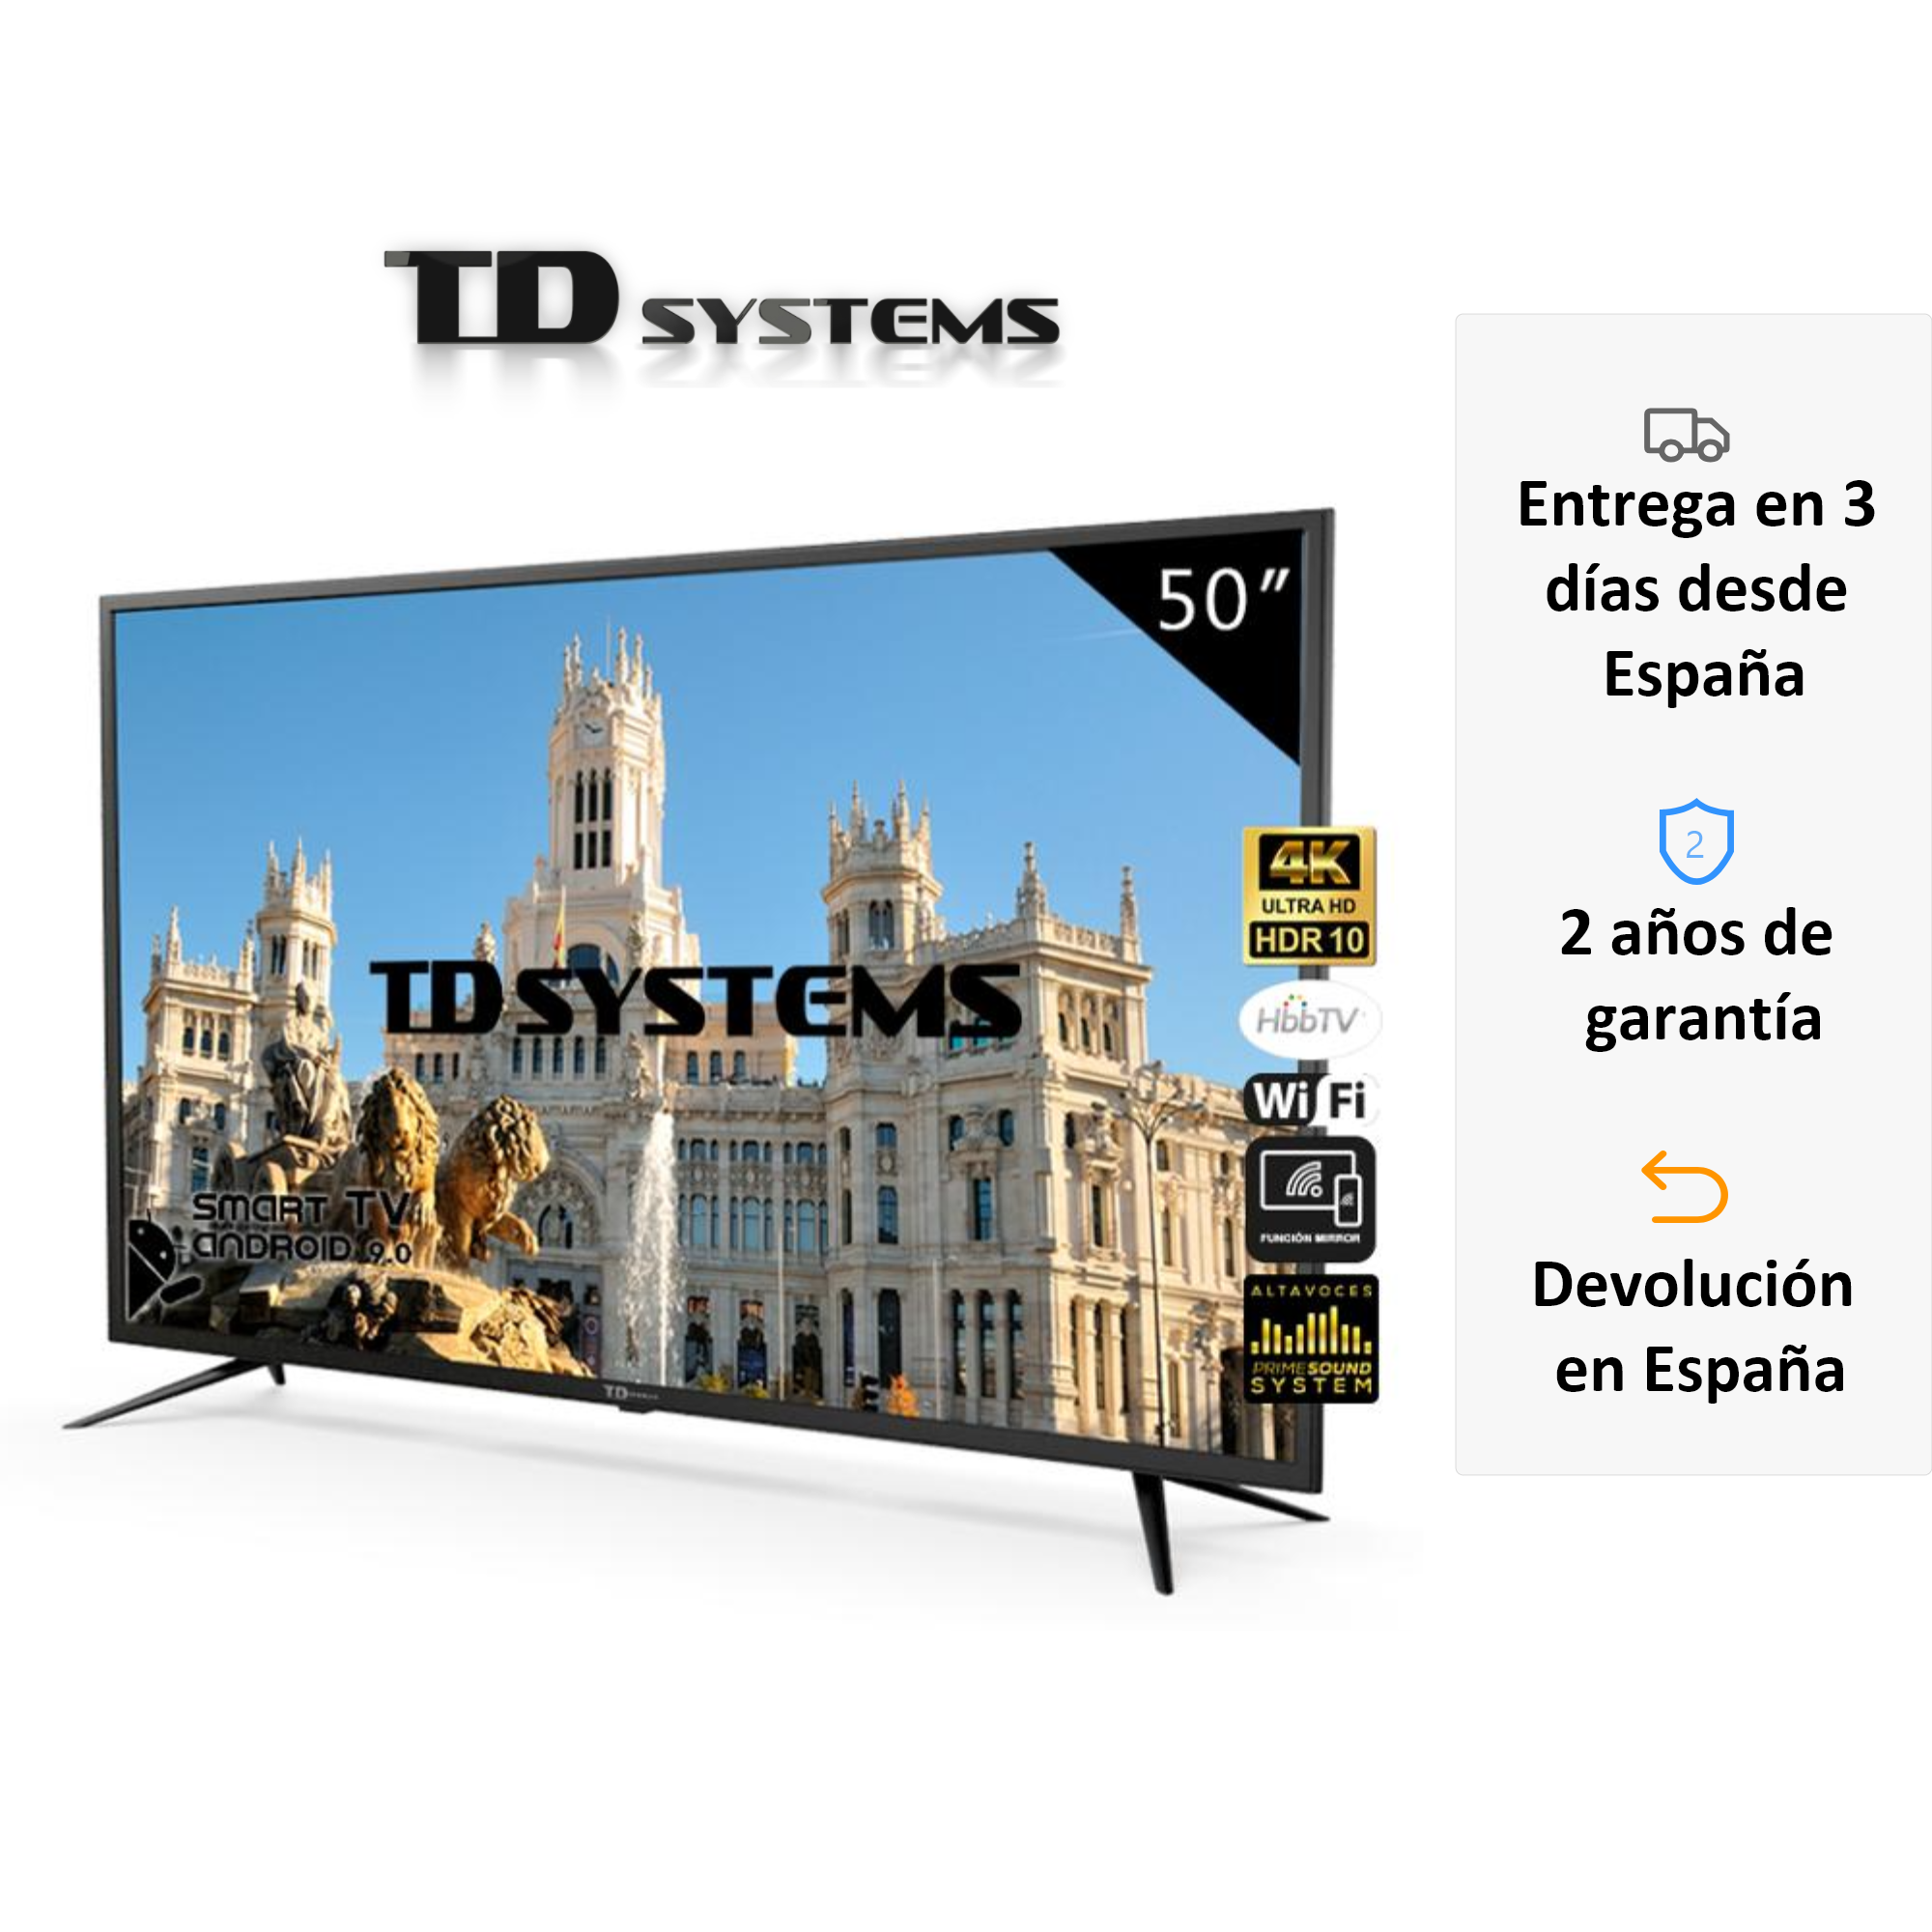 Televisions Smart TV 50 Inch TD K50DLJ10US Systems. UHD 4K HDR, DVB-T2/C/S2, HbbTV [Shipping From Spain, Guarantee Old 2]